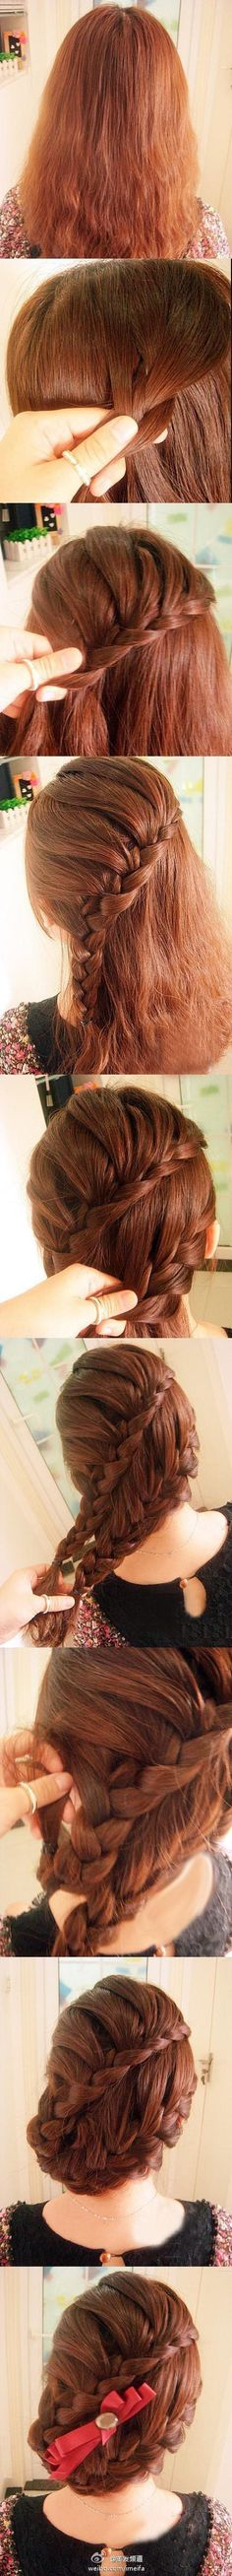 Super Cute Braided Updo